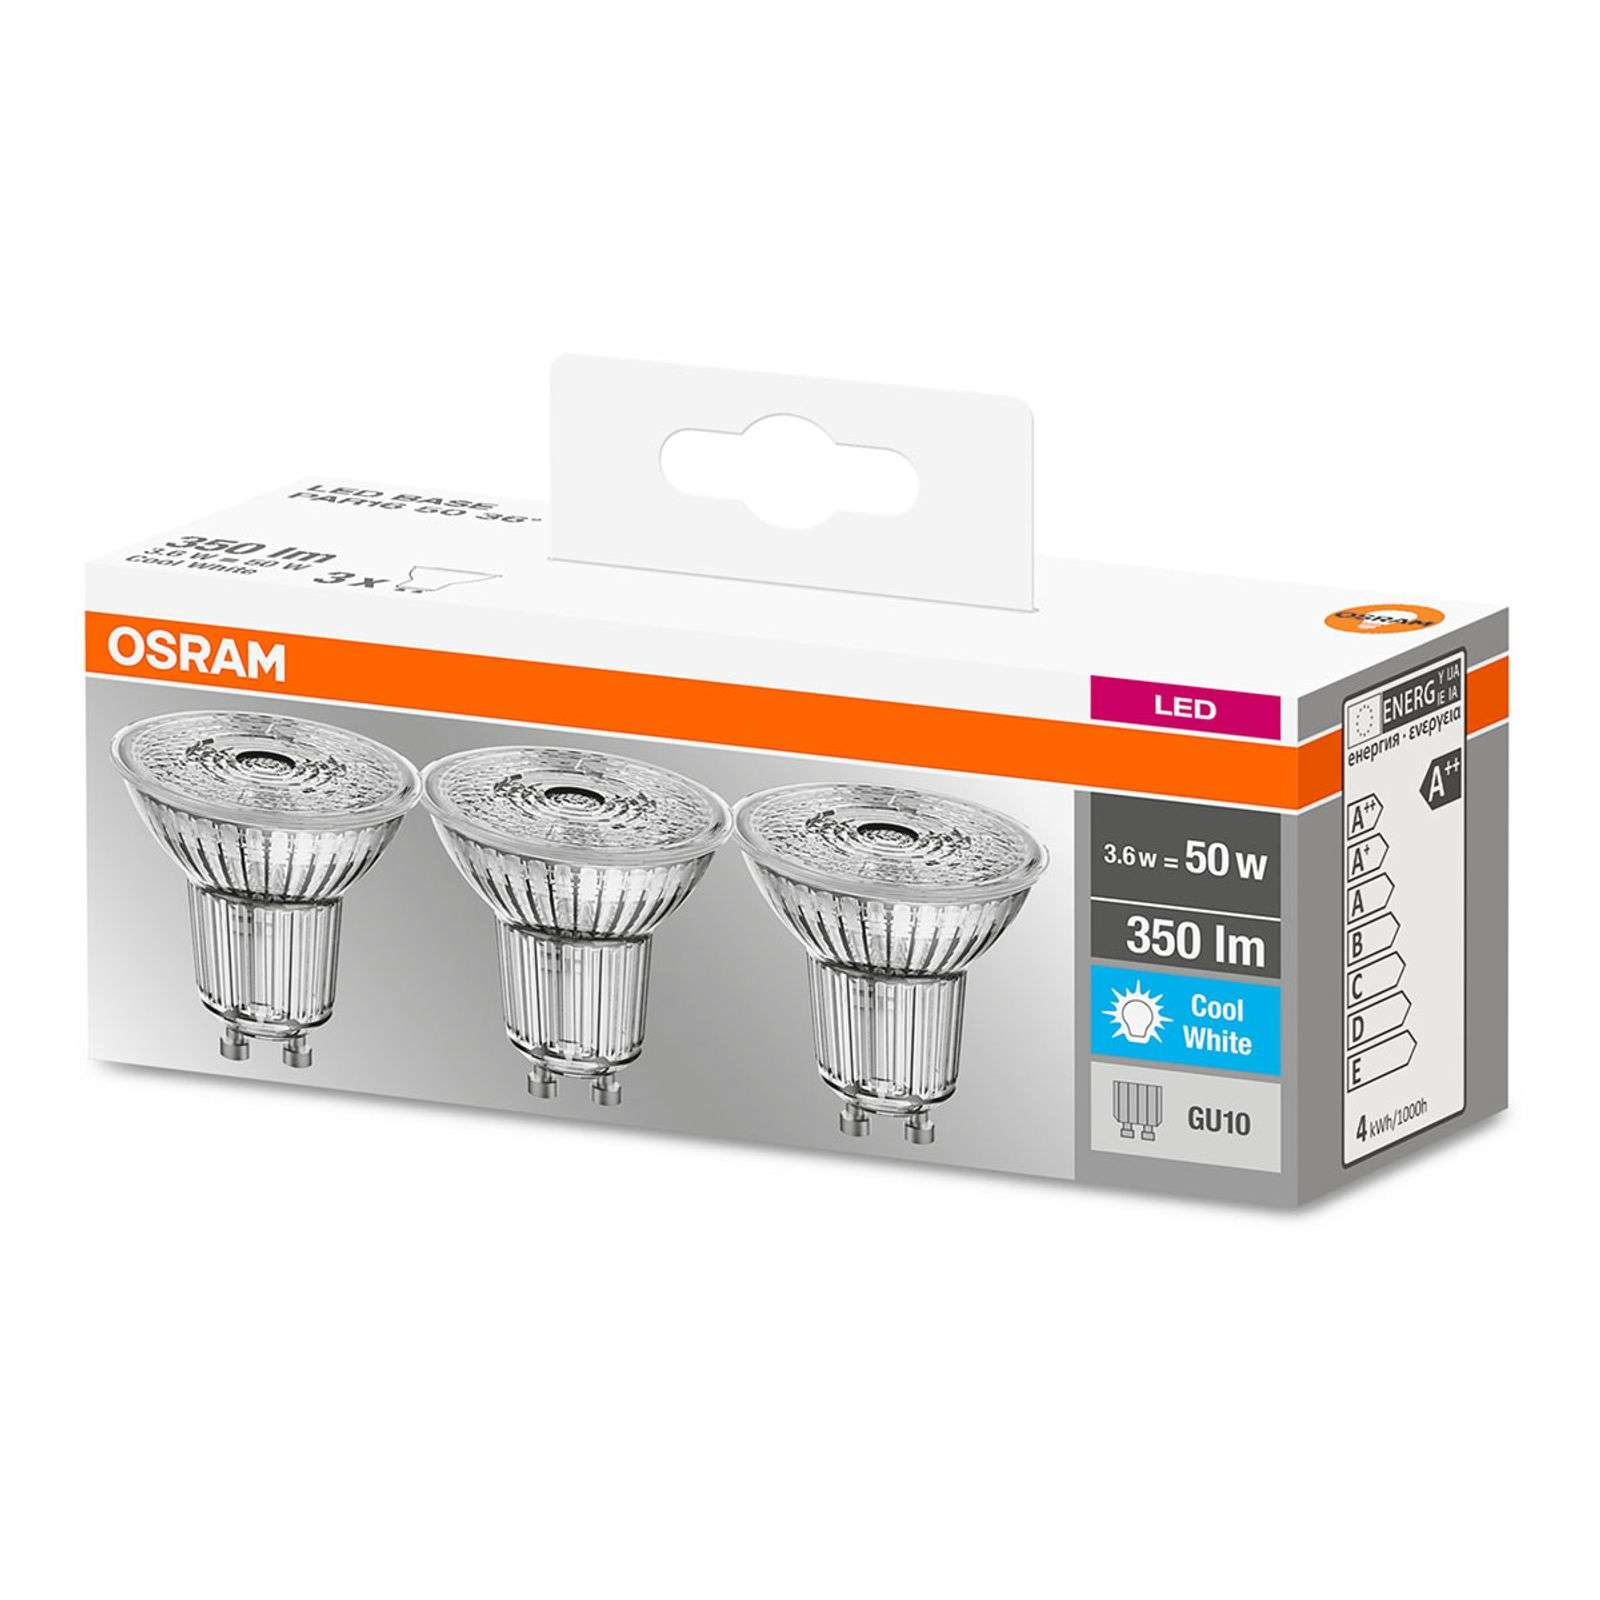 Lampadina LED a riflettore GU10 3,6W, set da 3